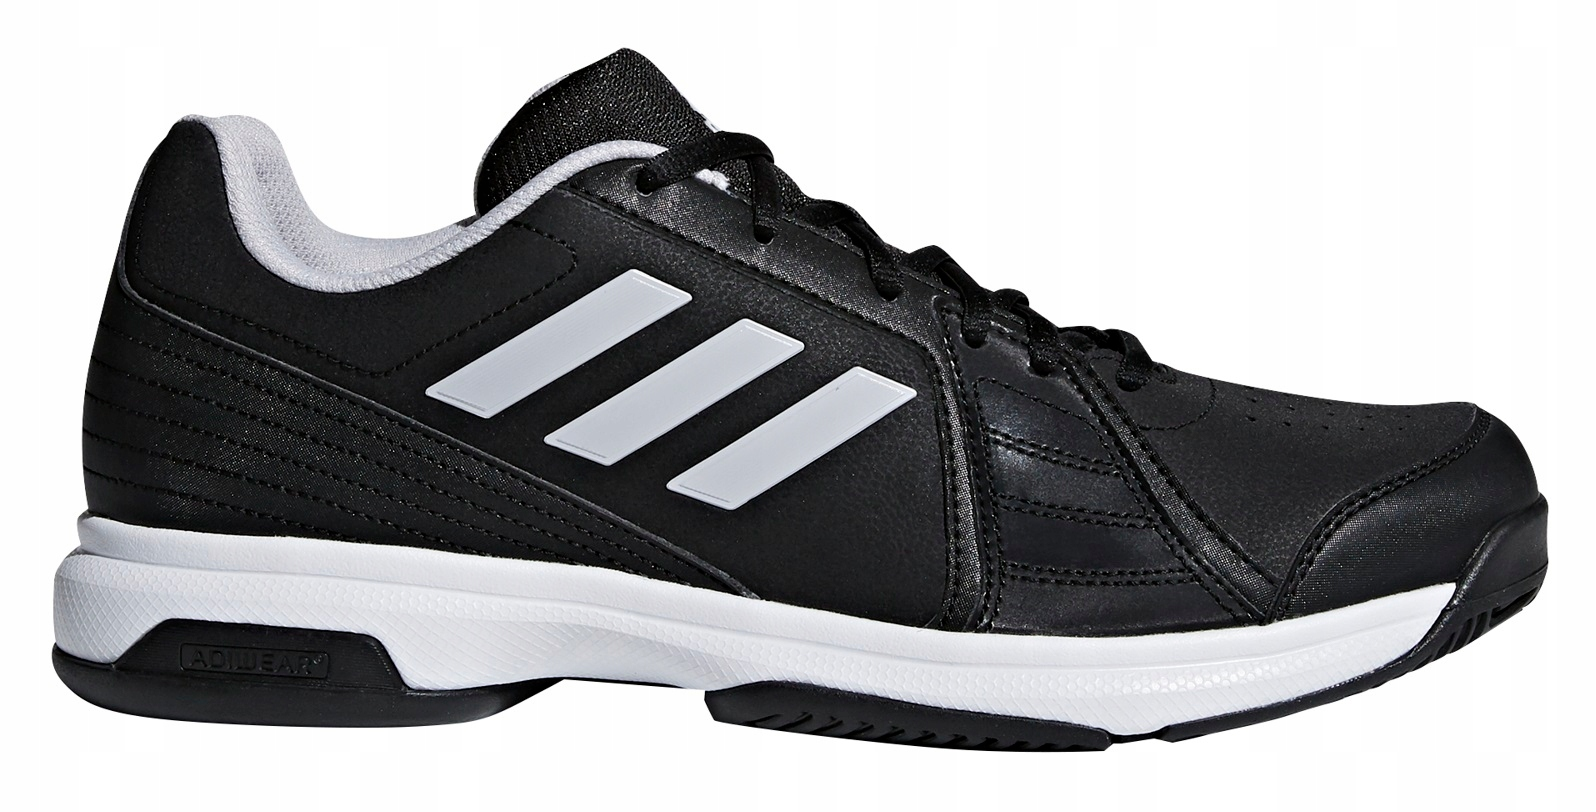 Buty adidas Approach BB7946 49 1/3